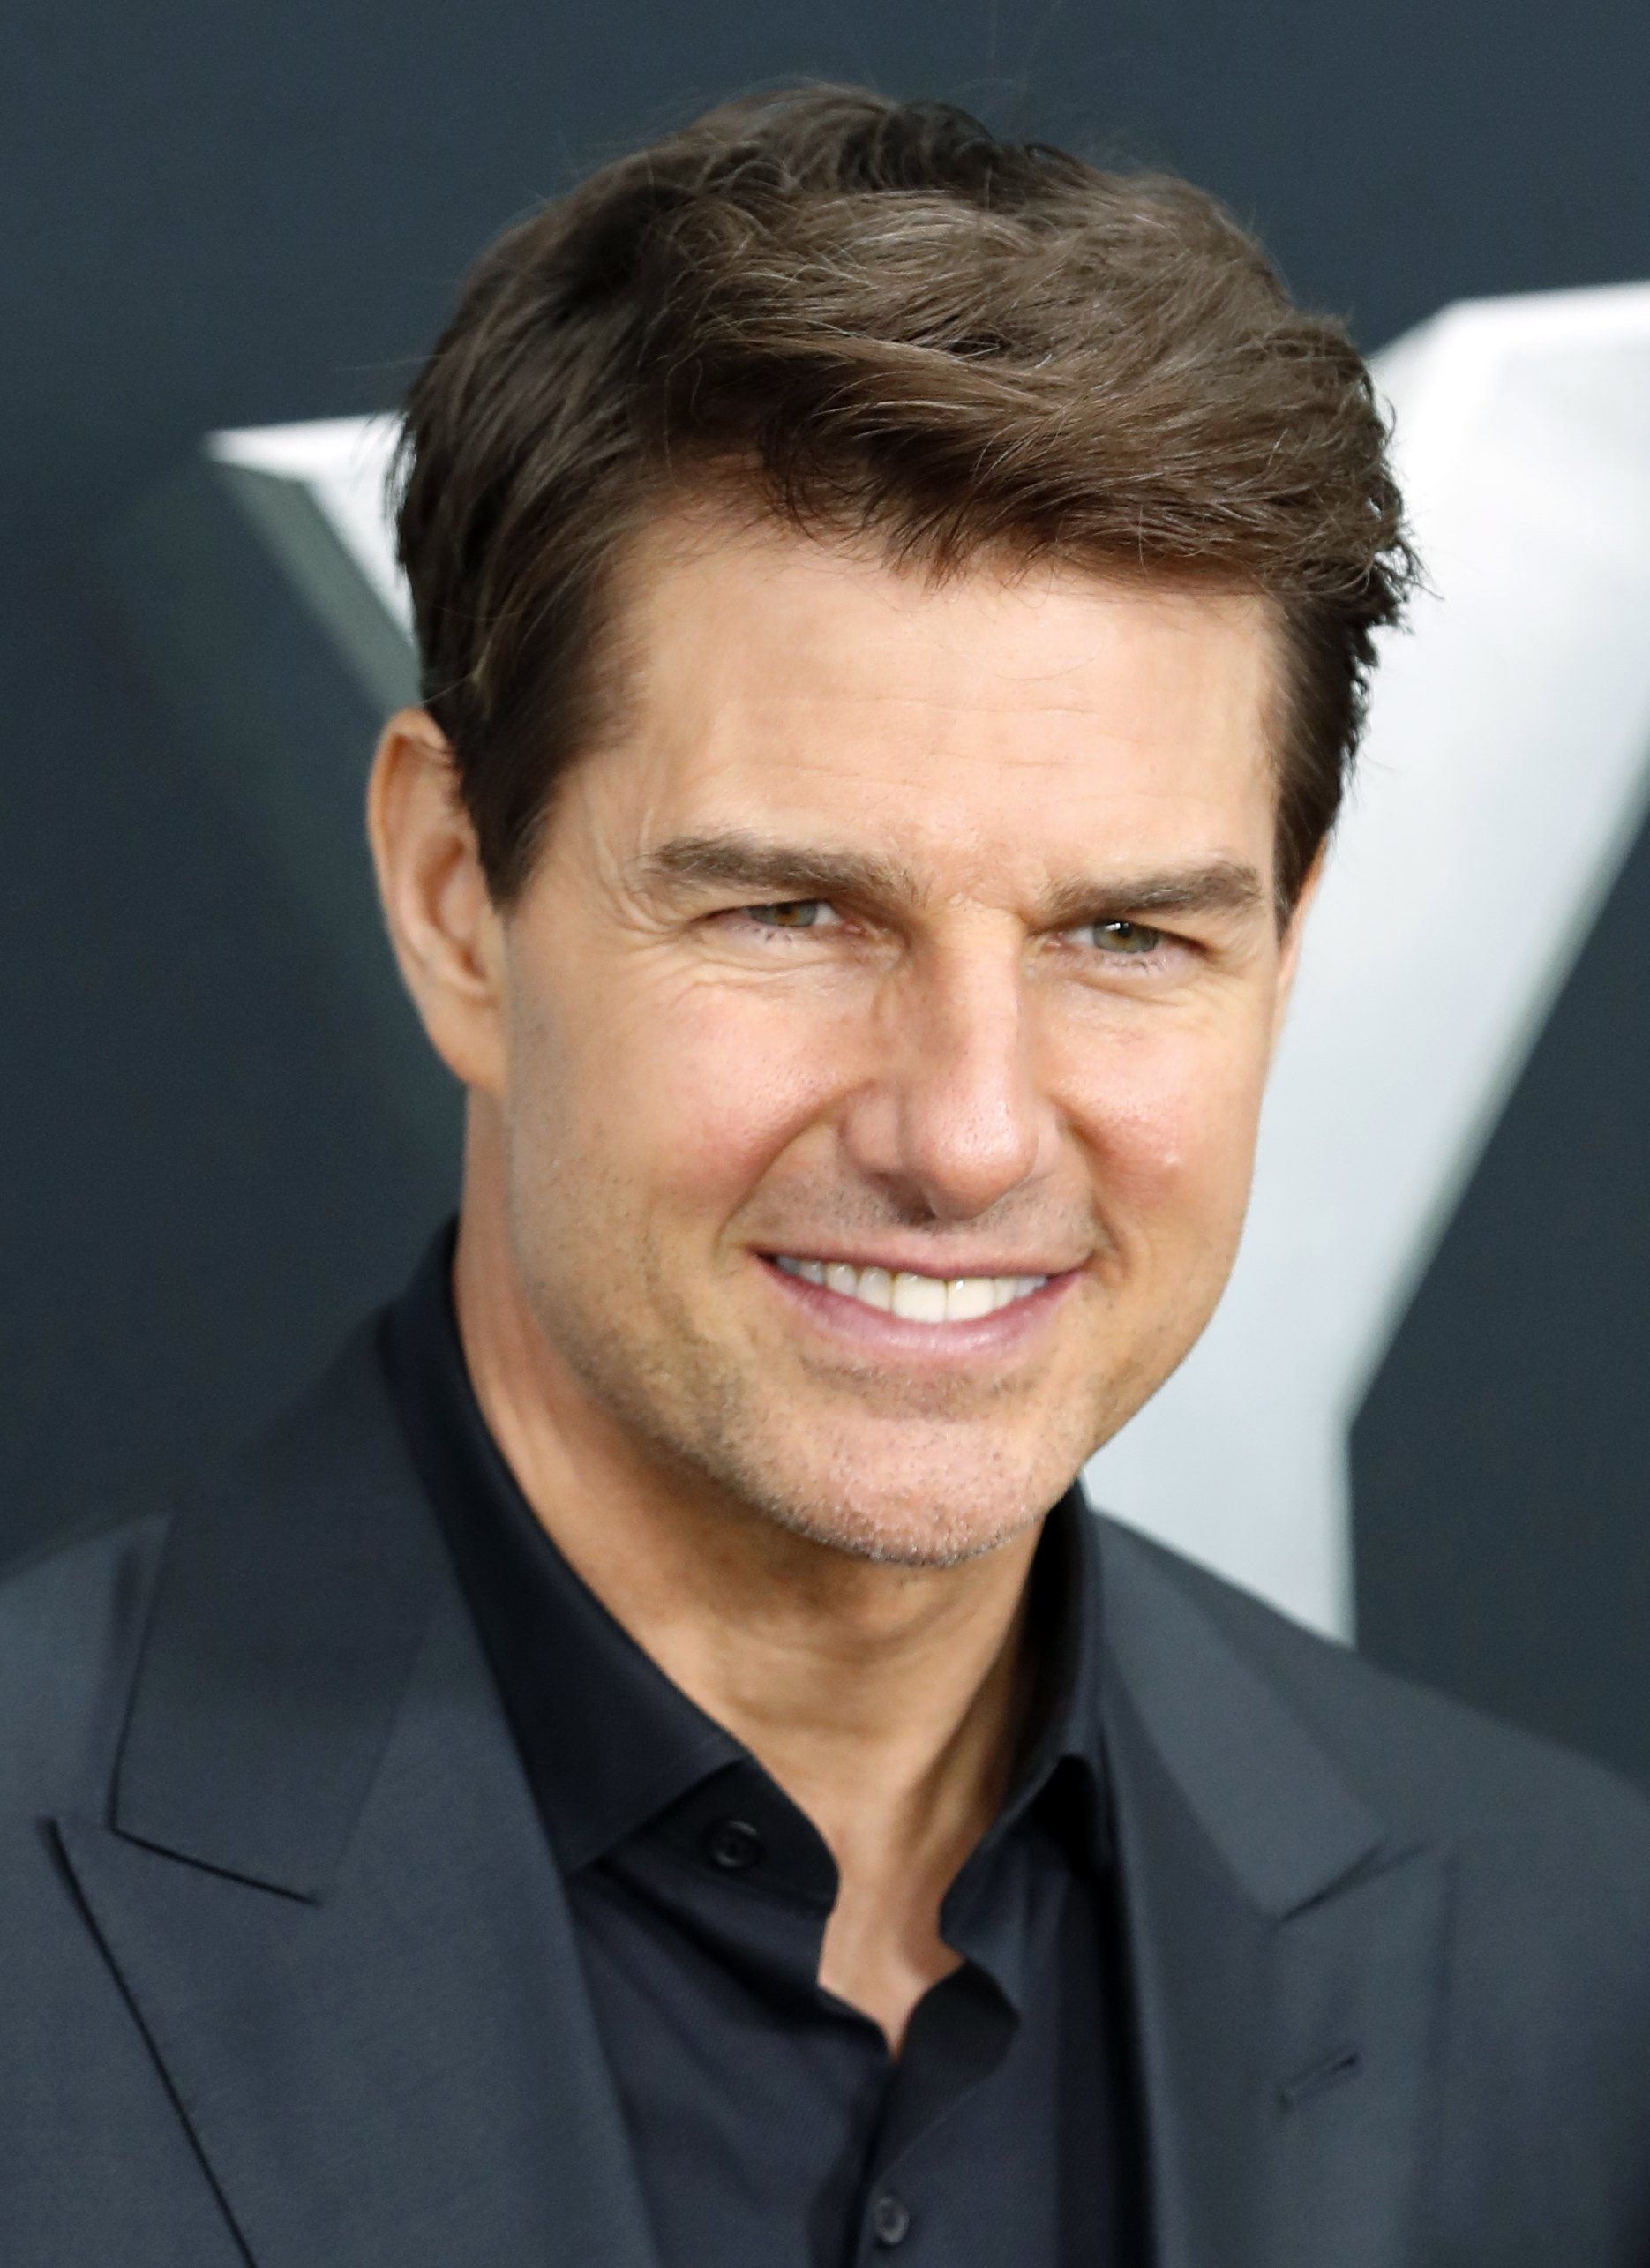 Tom Cruise - PLAY Personajes Tom Cruise